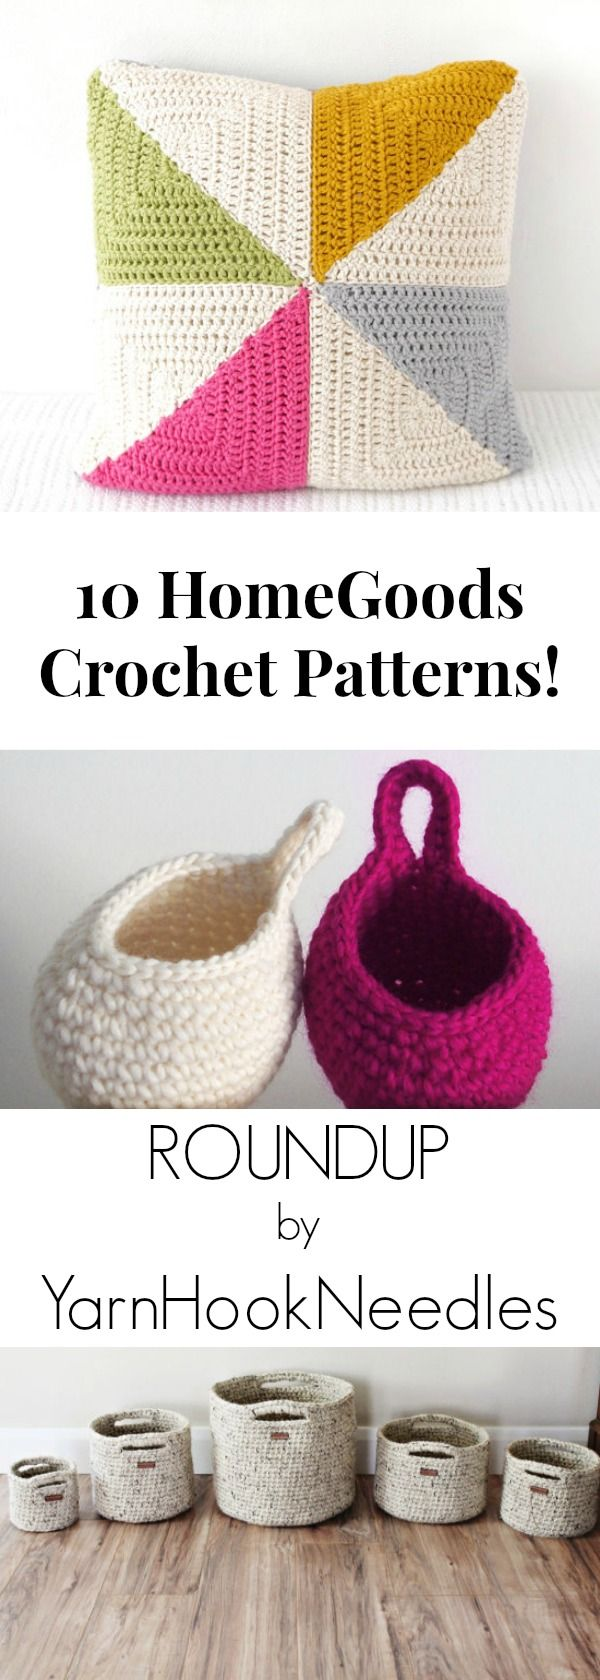 1185 best Crochet images on Pinterest | 2 colours, Backpacks and Basket